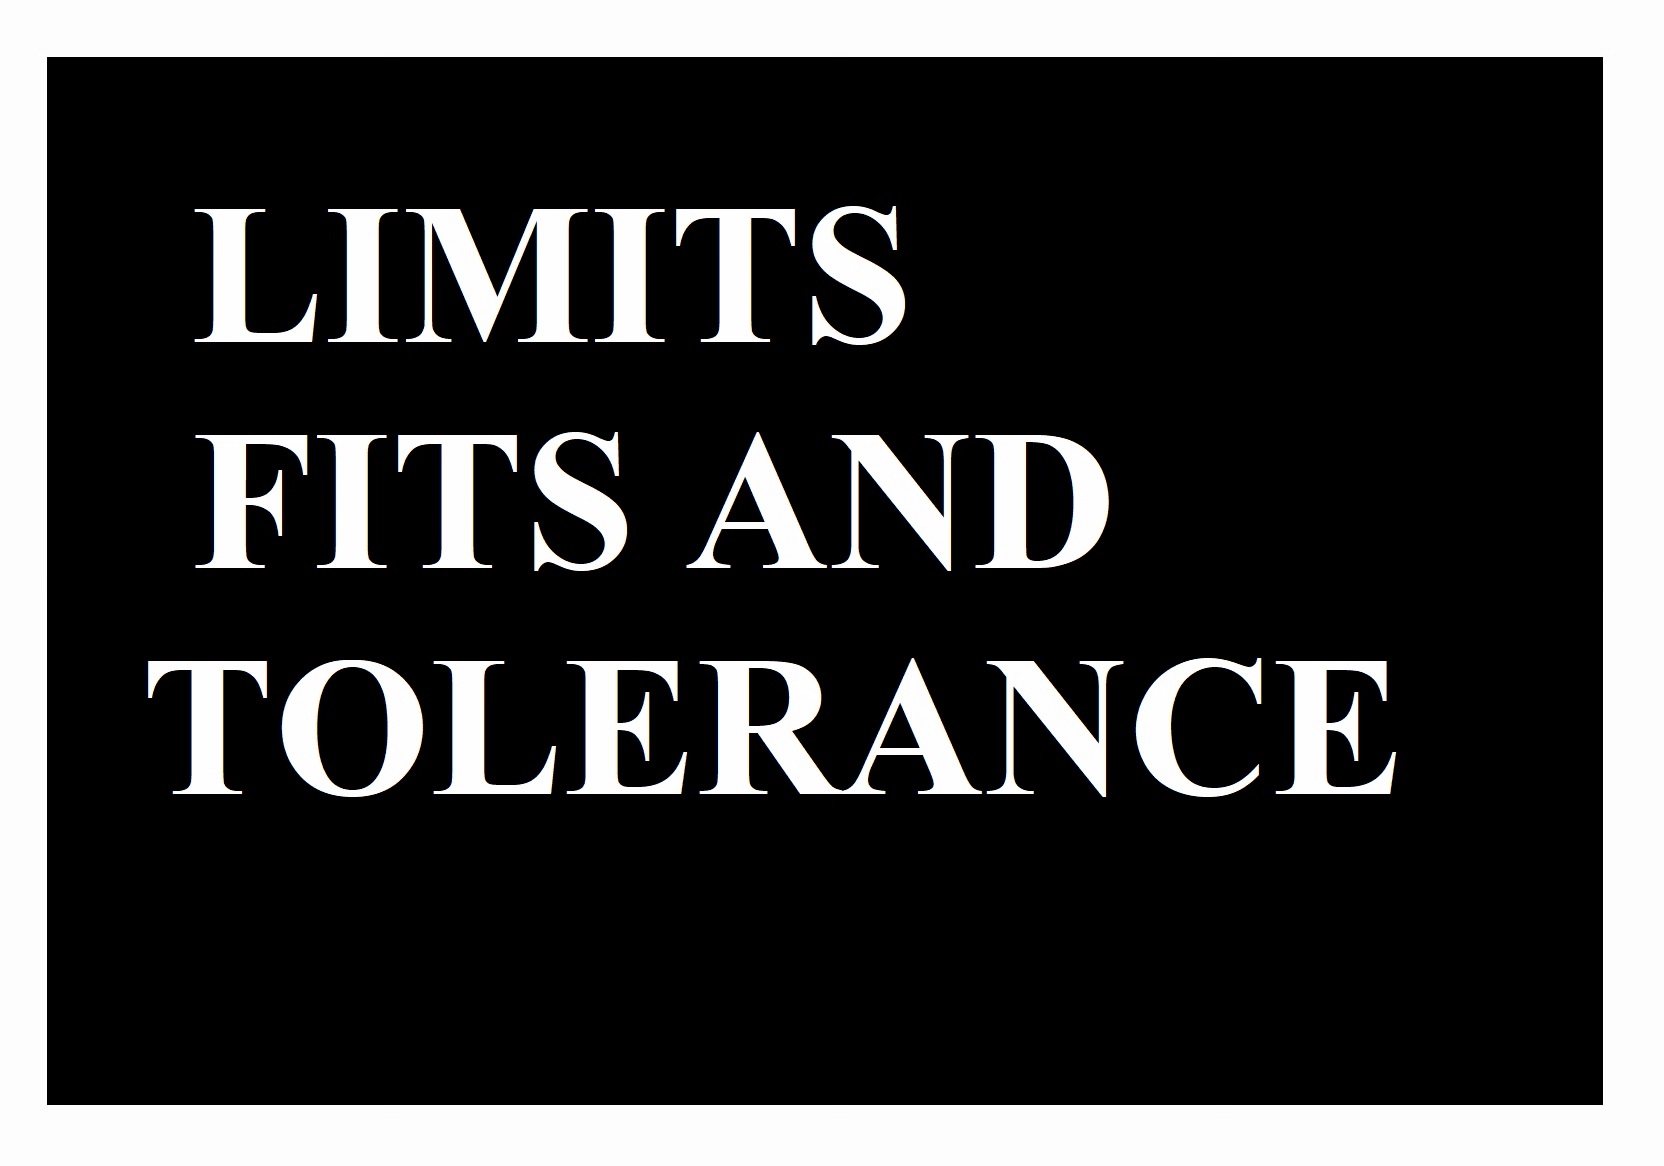 LIMITS FITS AND TOLERANCE